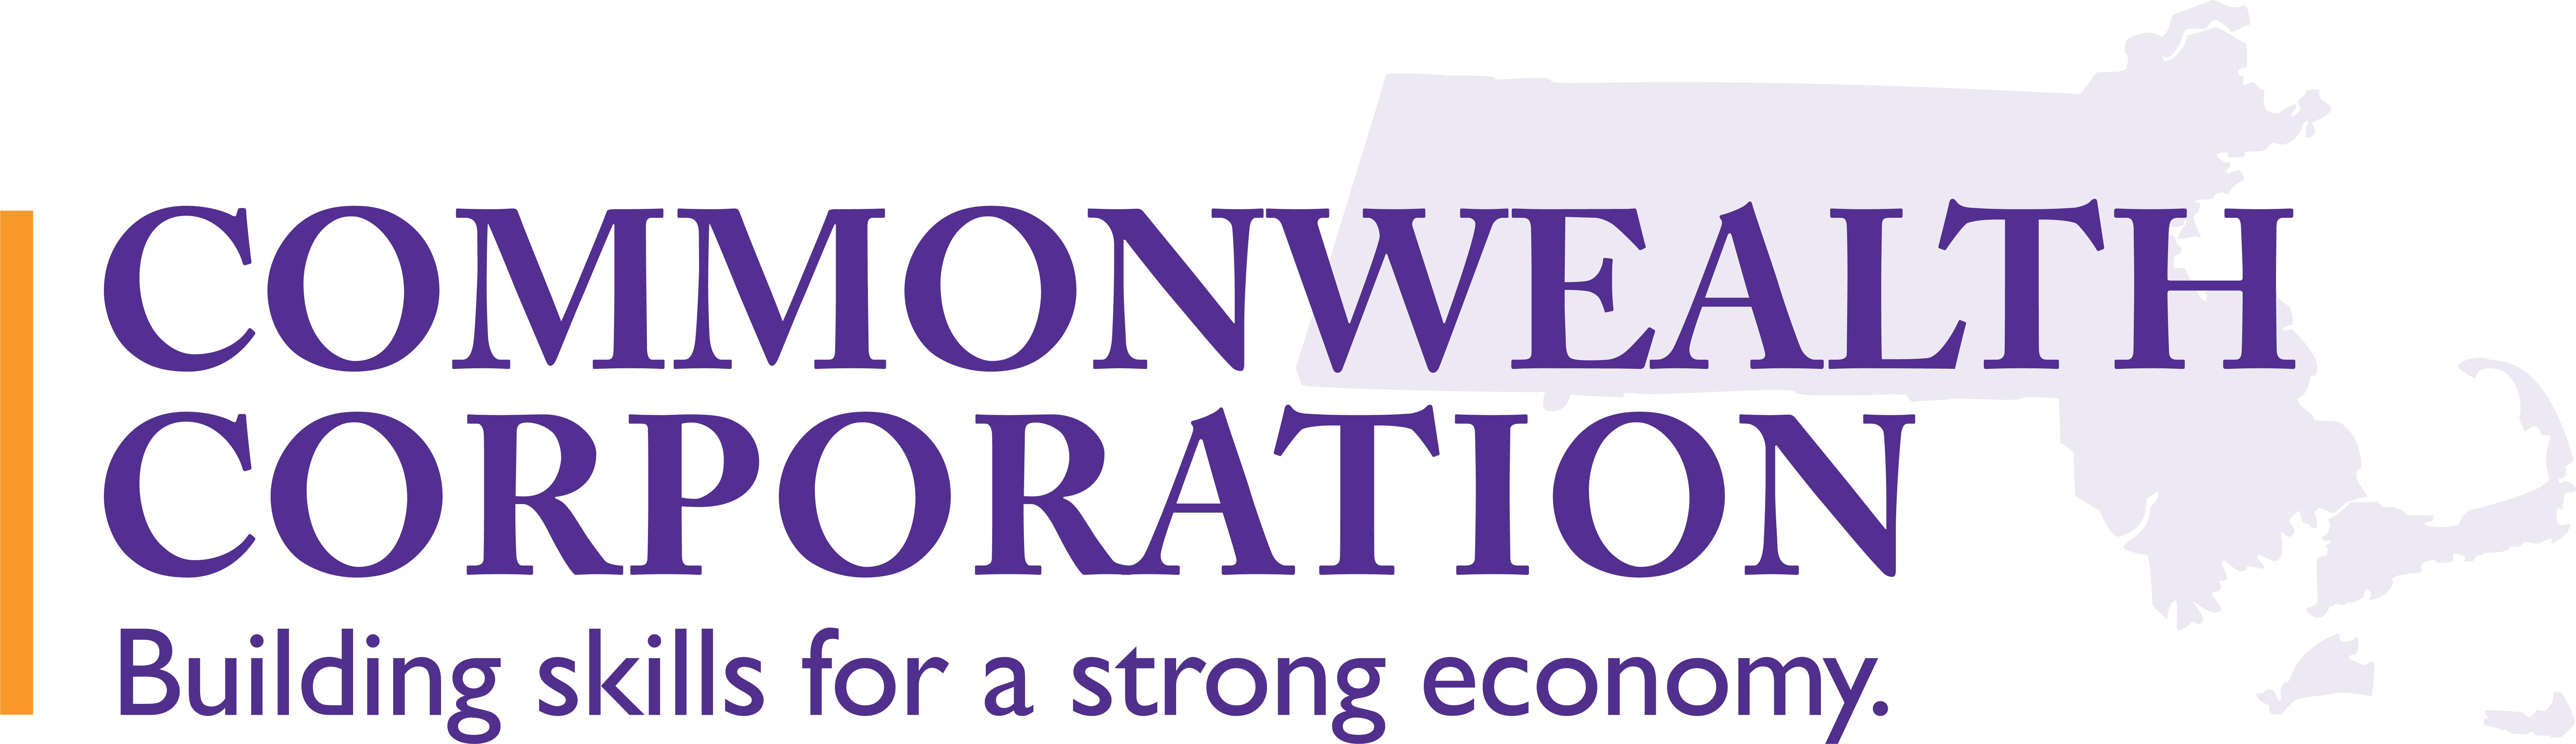 Commonwealth Corporation logo